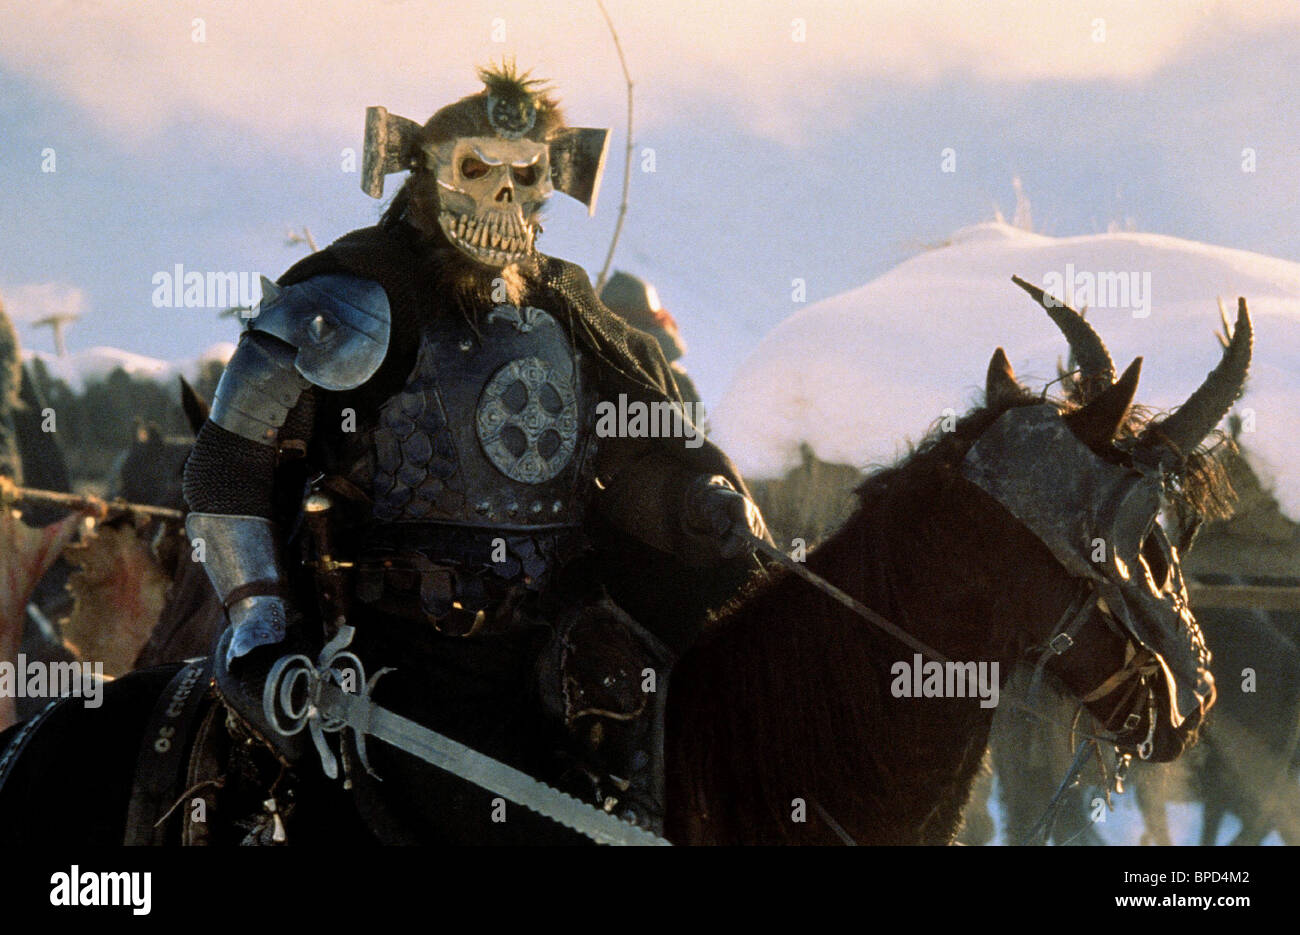 PAT ROACH (GENERAL KAEL) WILLOW (1988 Stock Photo, Royalty